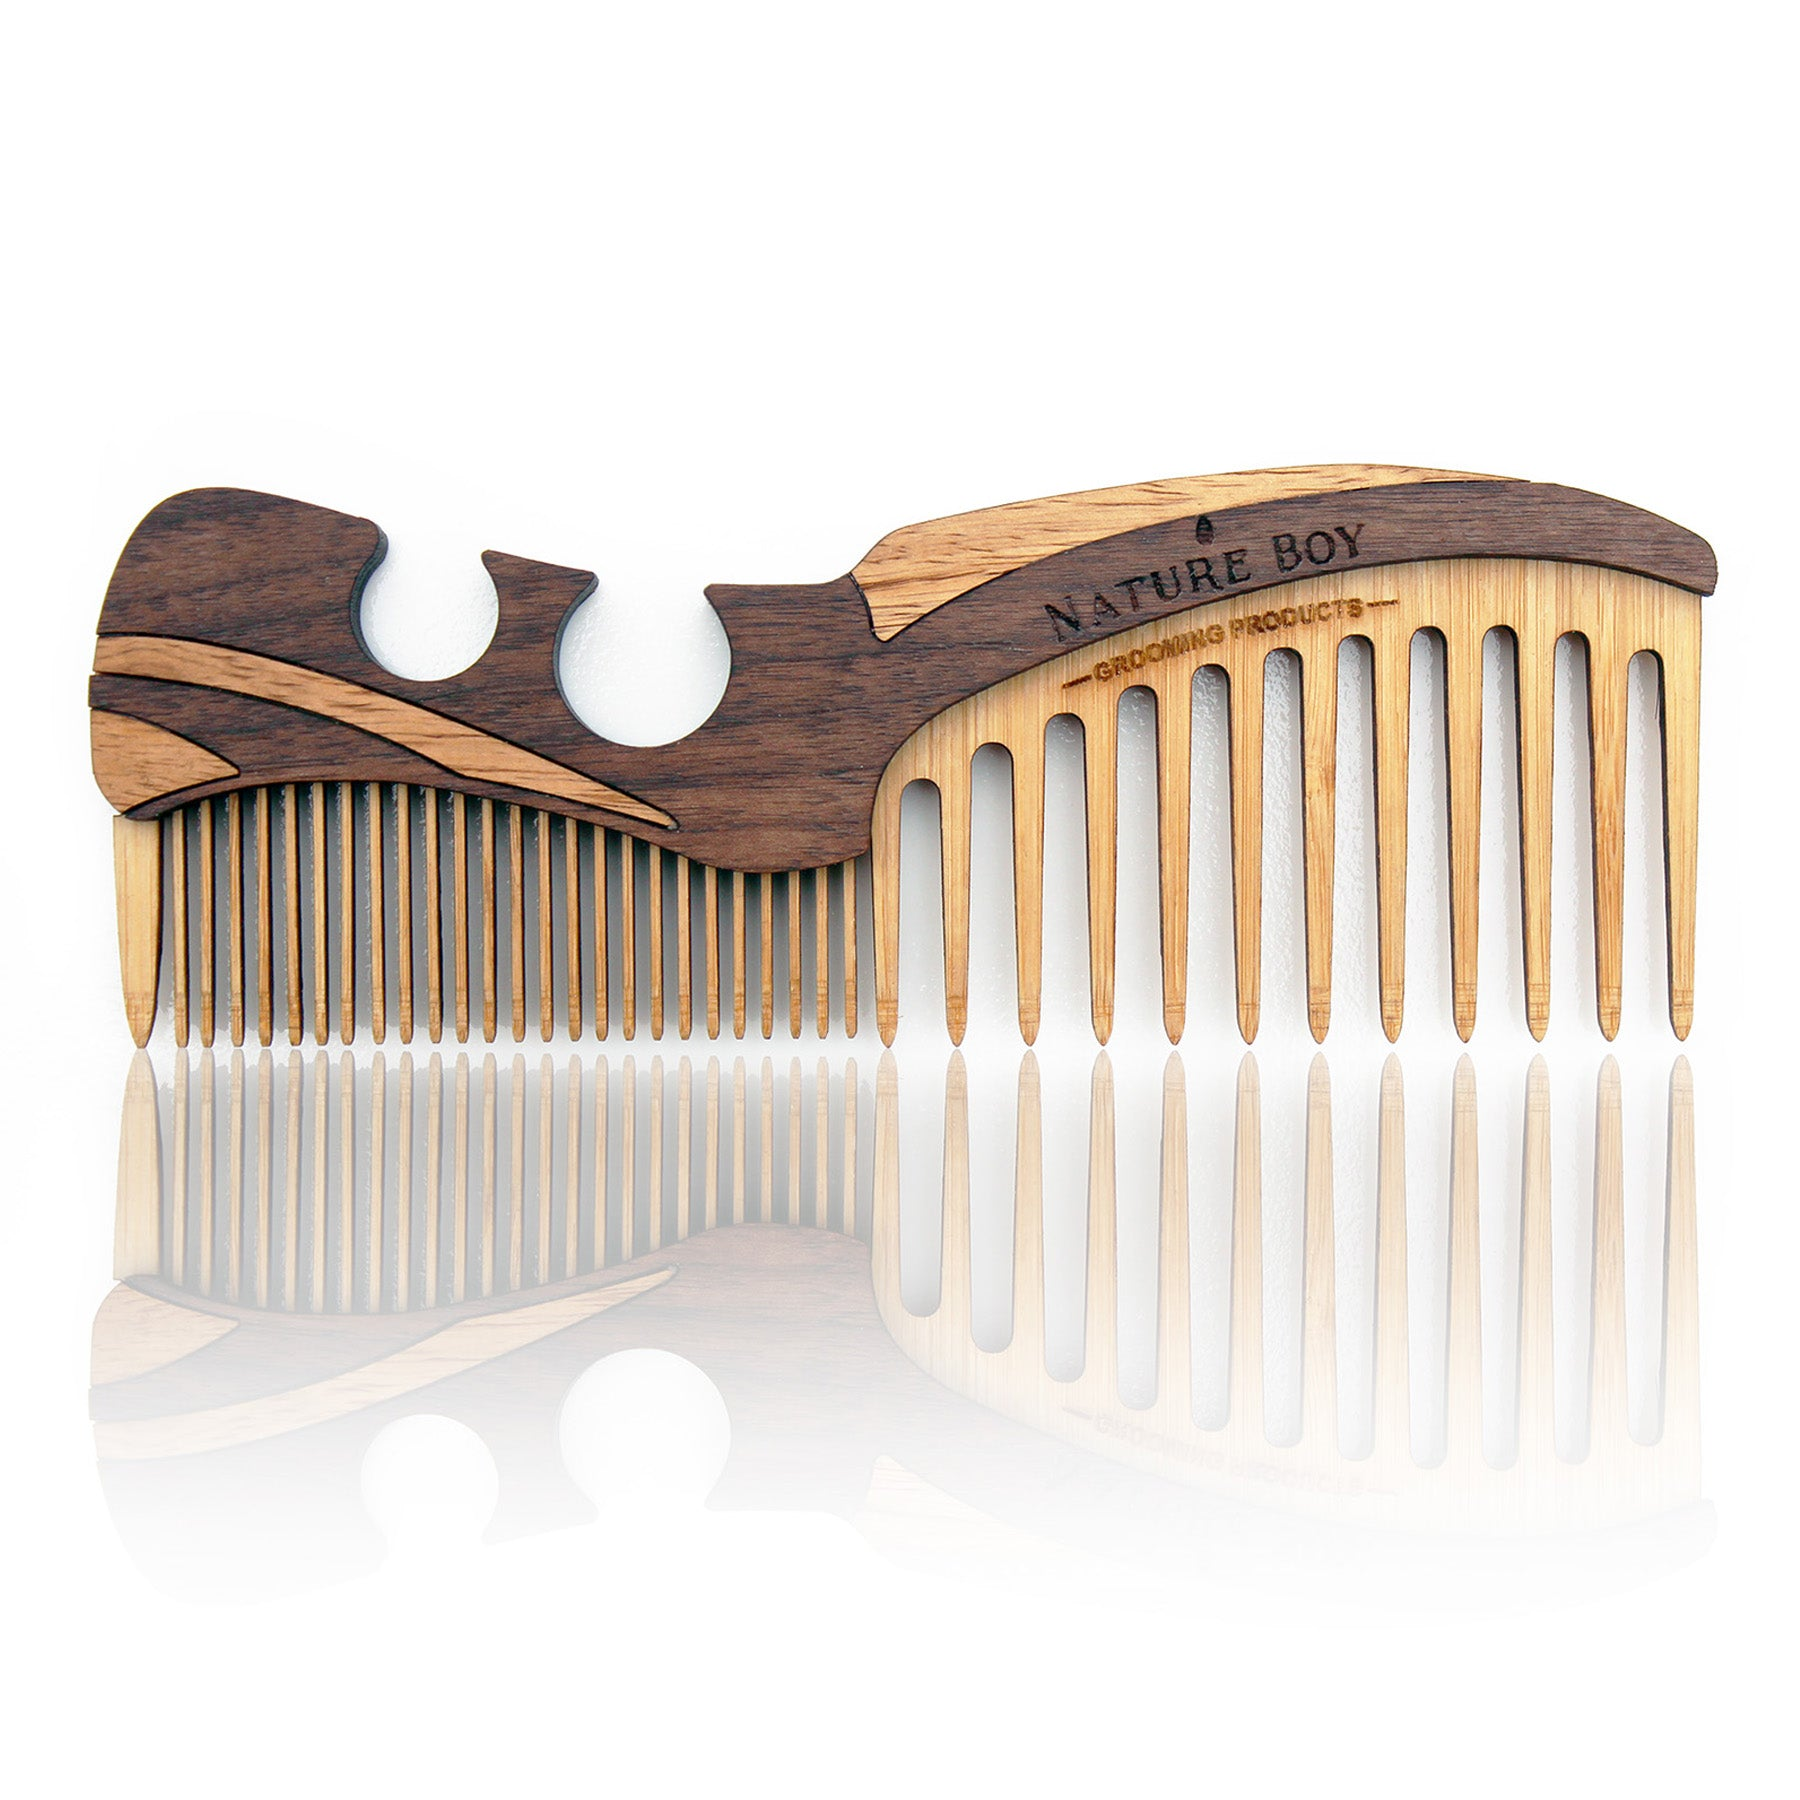 NATURE BOY Wooden Beard Comb